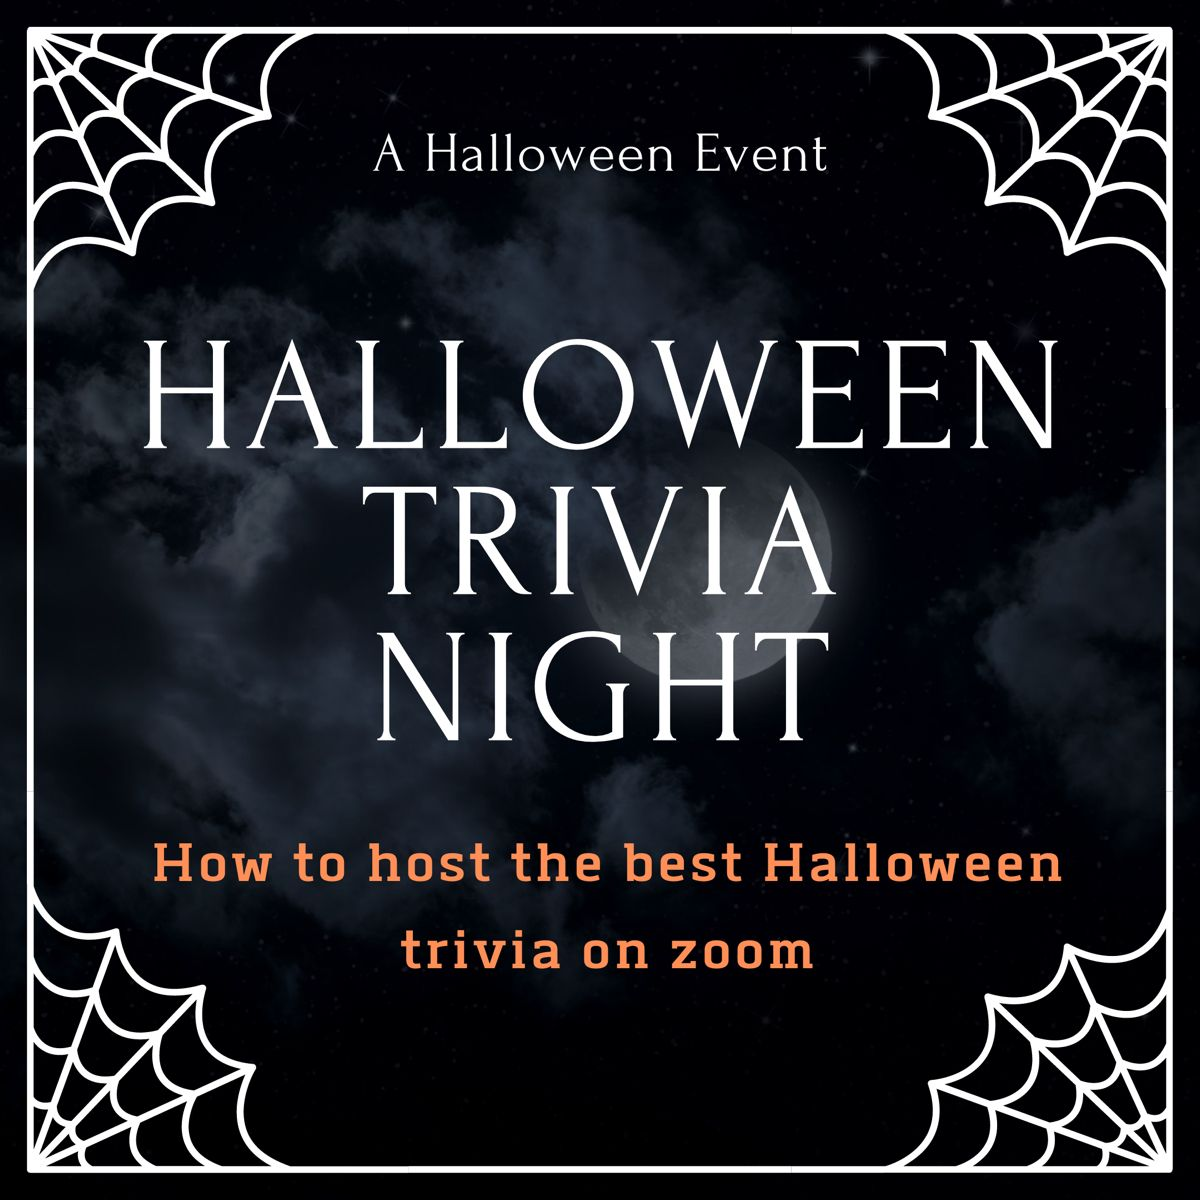 How to host a Halloween trivia night on zoom in 2020